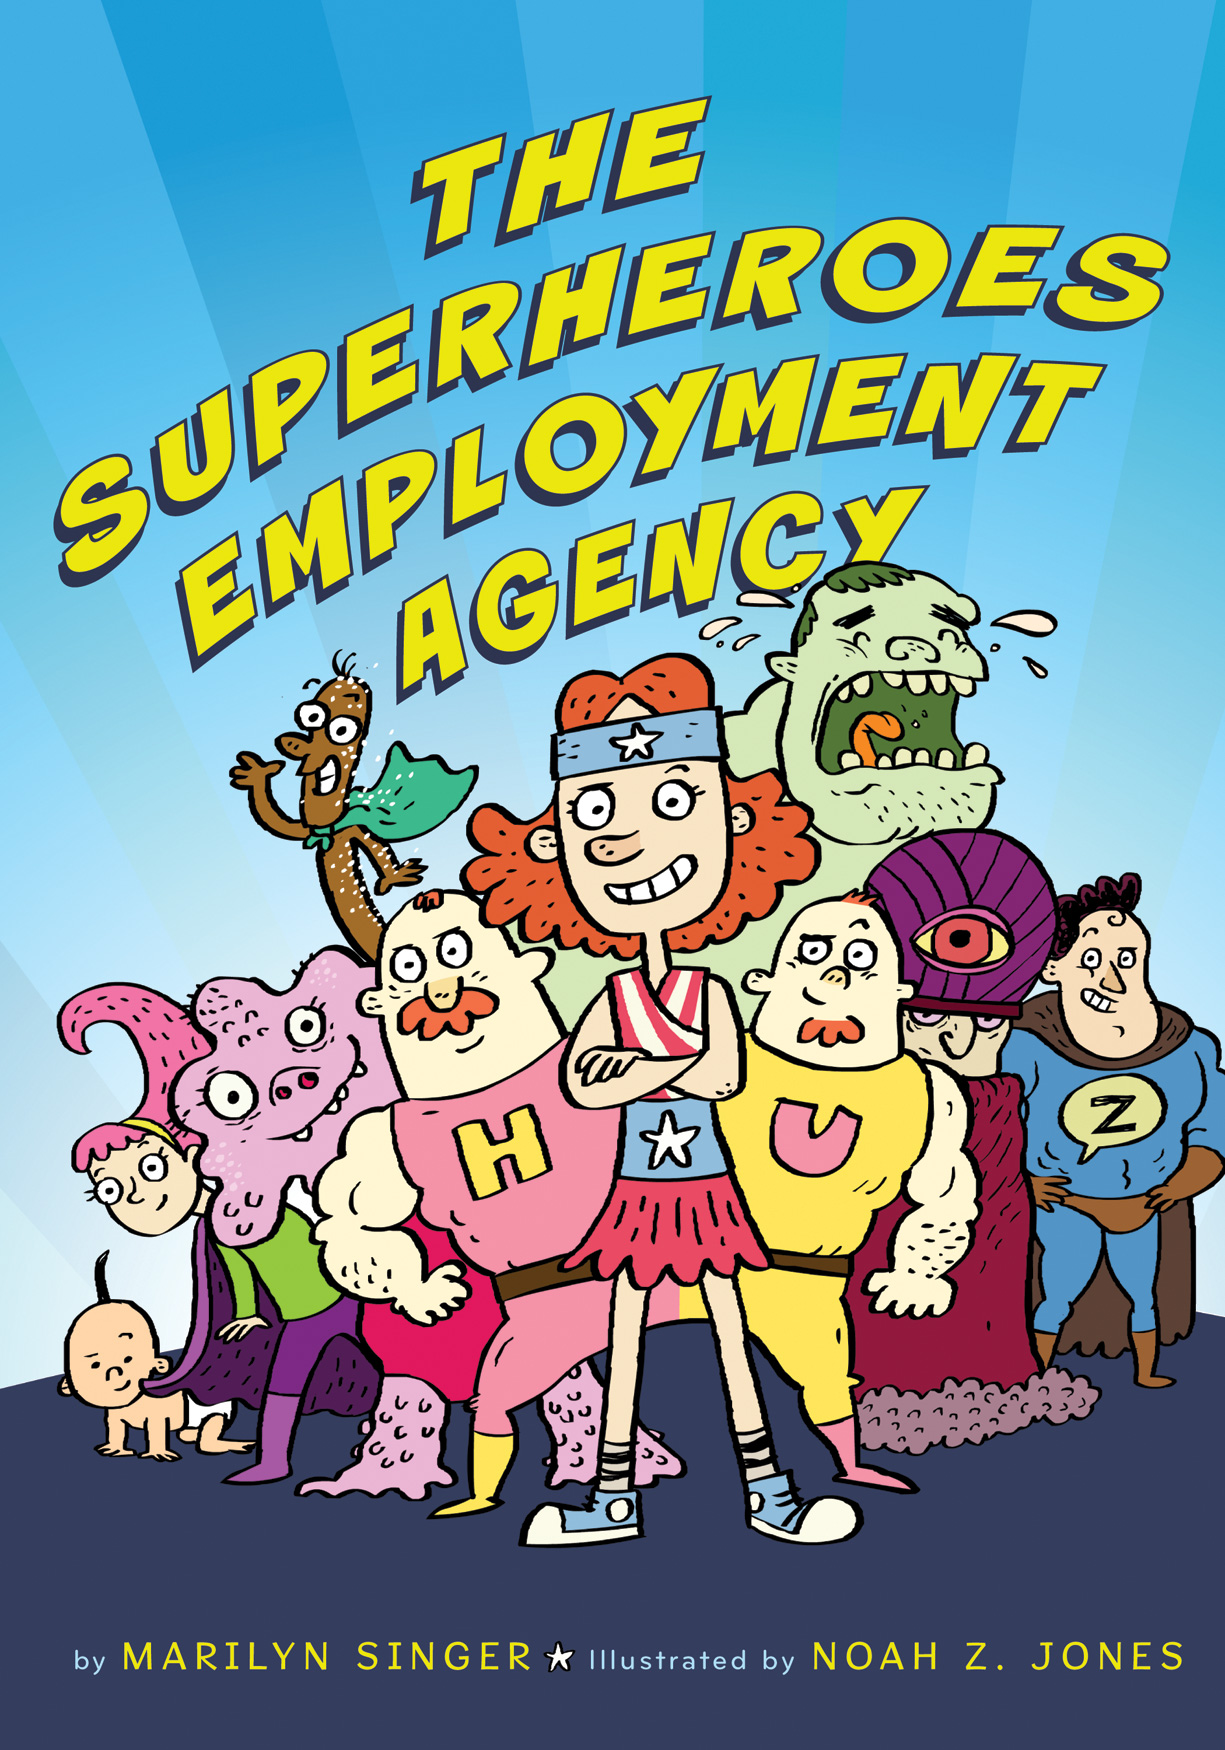 The Superheroes Employment Agency-9780547435596